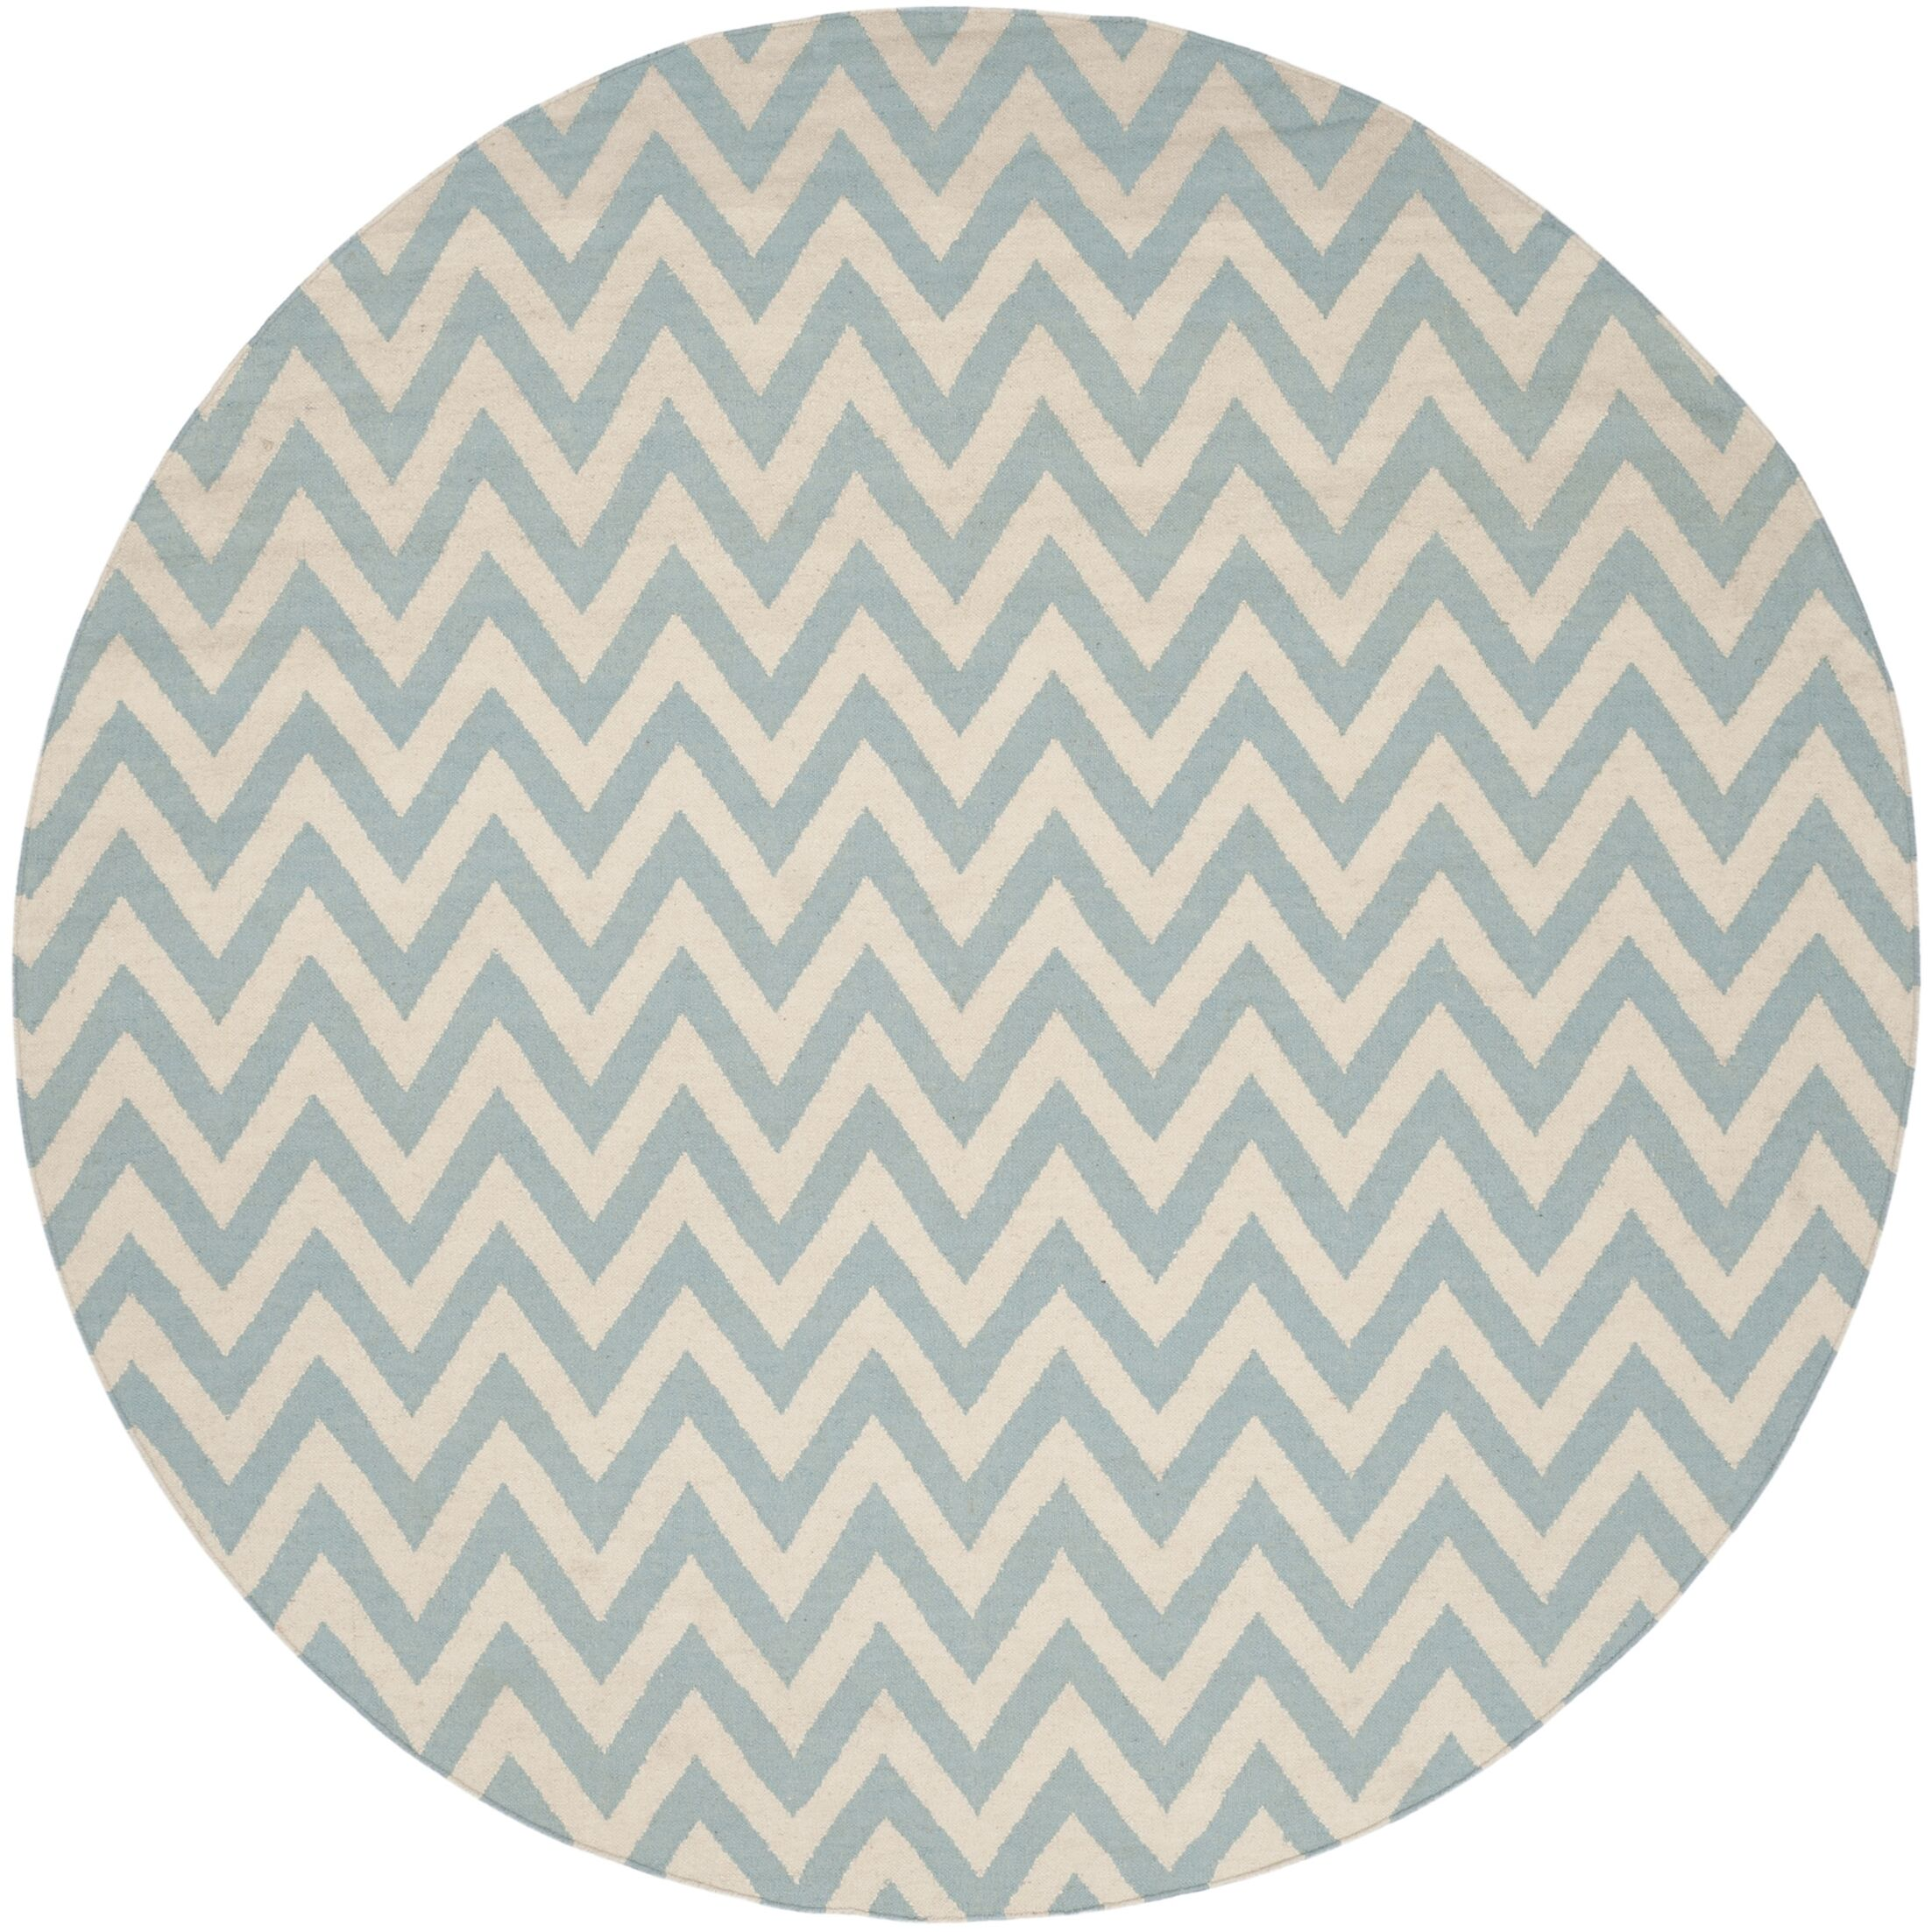 Dhurries Hand-Woven Wool Blue/Ivory Area Rug Rug Size: Round 8'